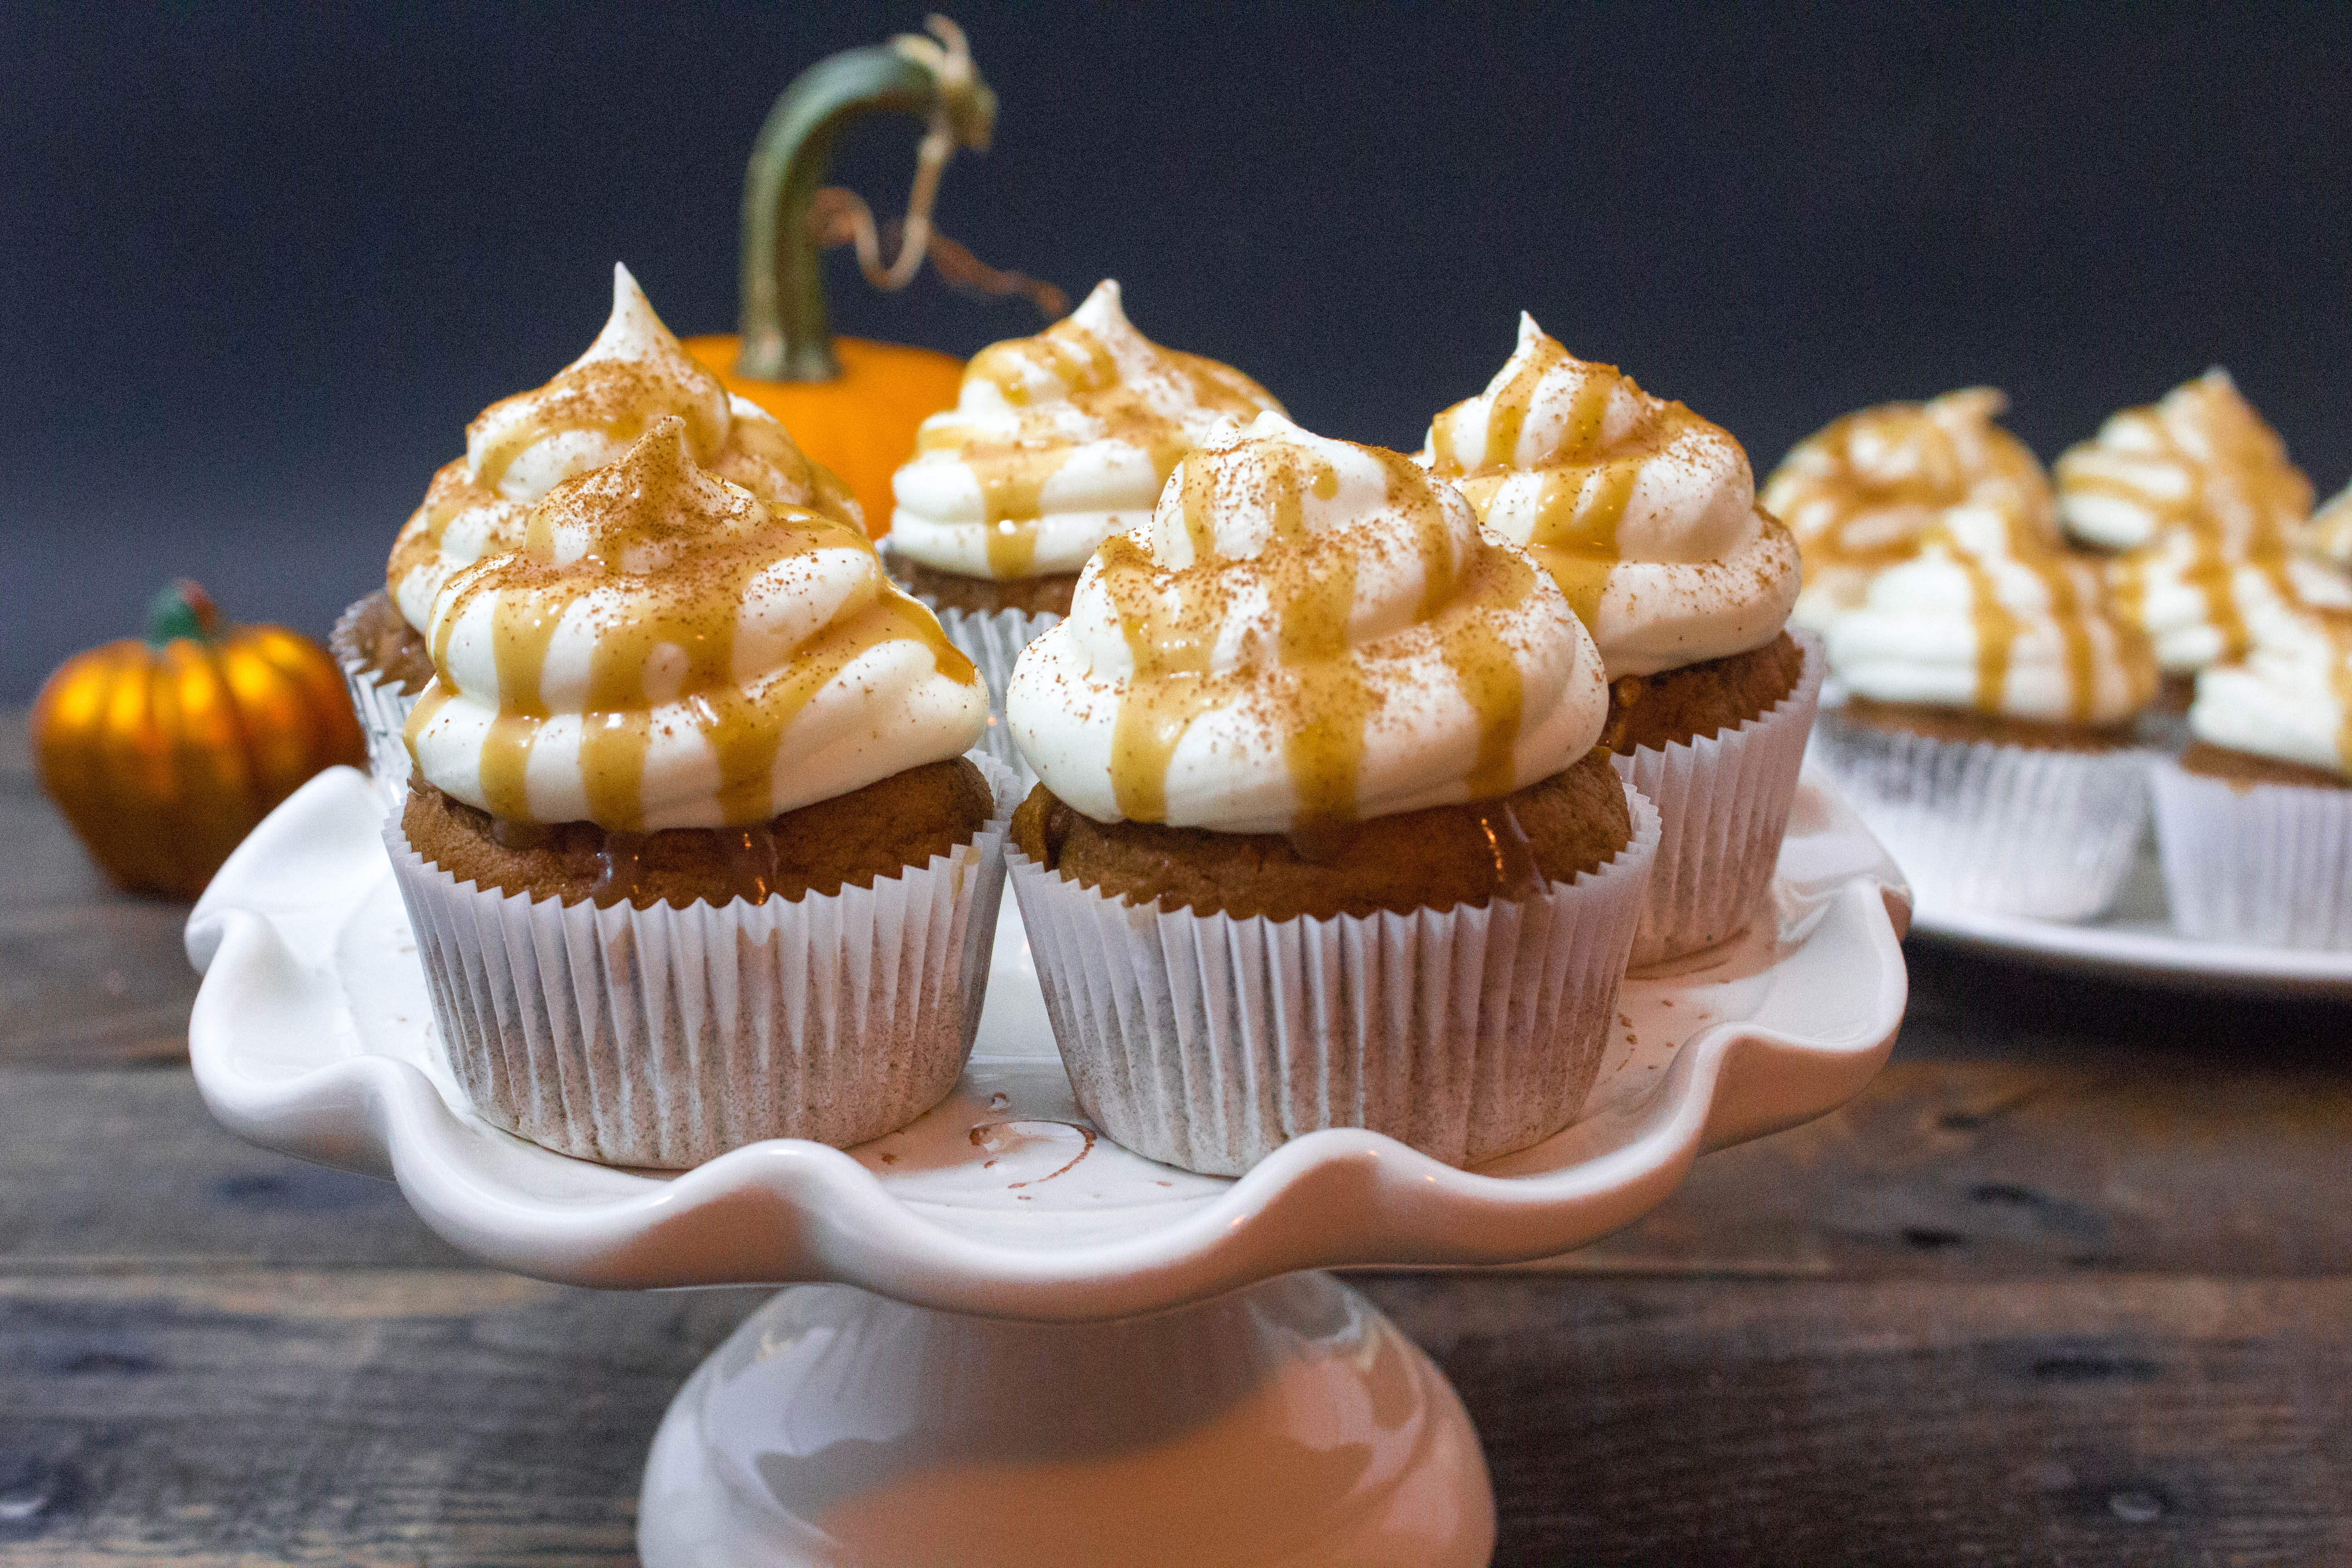 Fluffy Pumpkin Cupcakes with Drizzly Salted Caramel